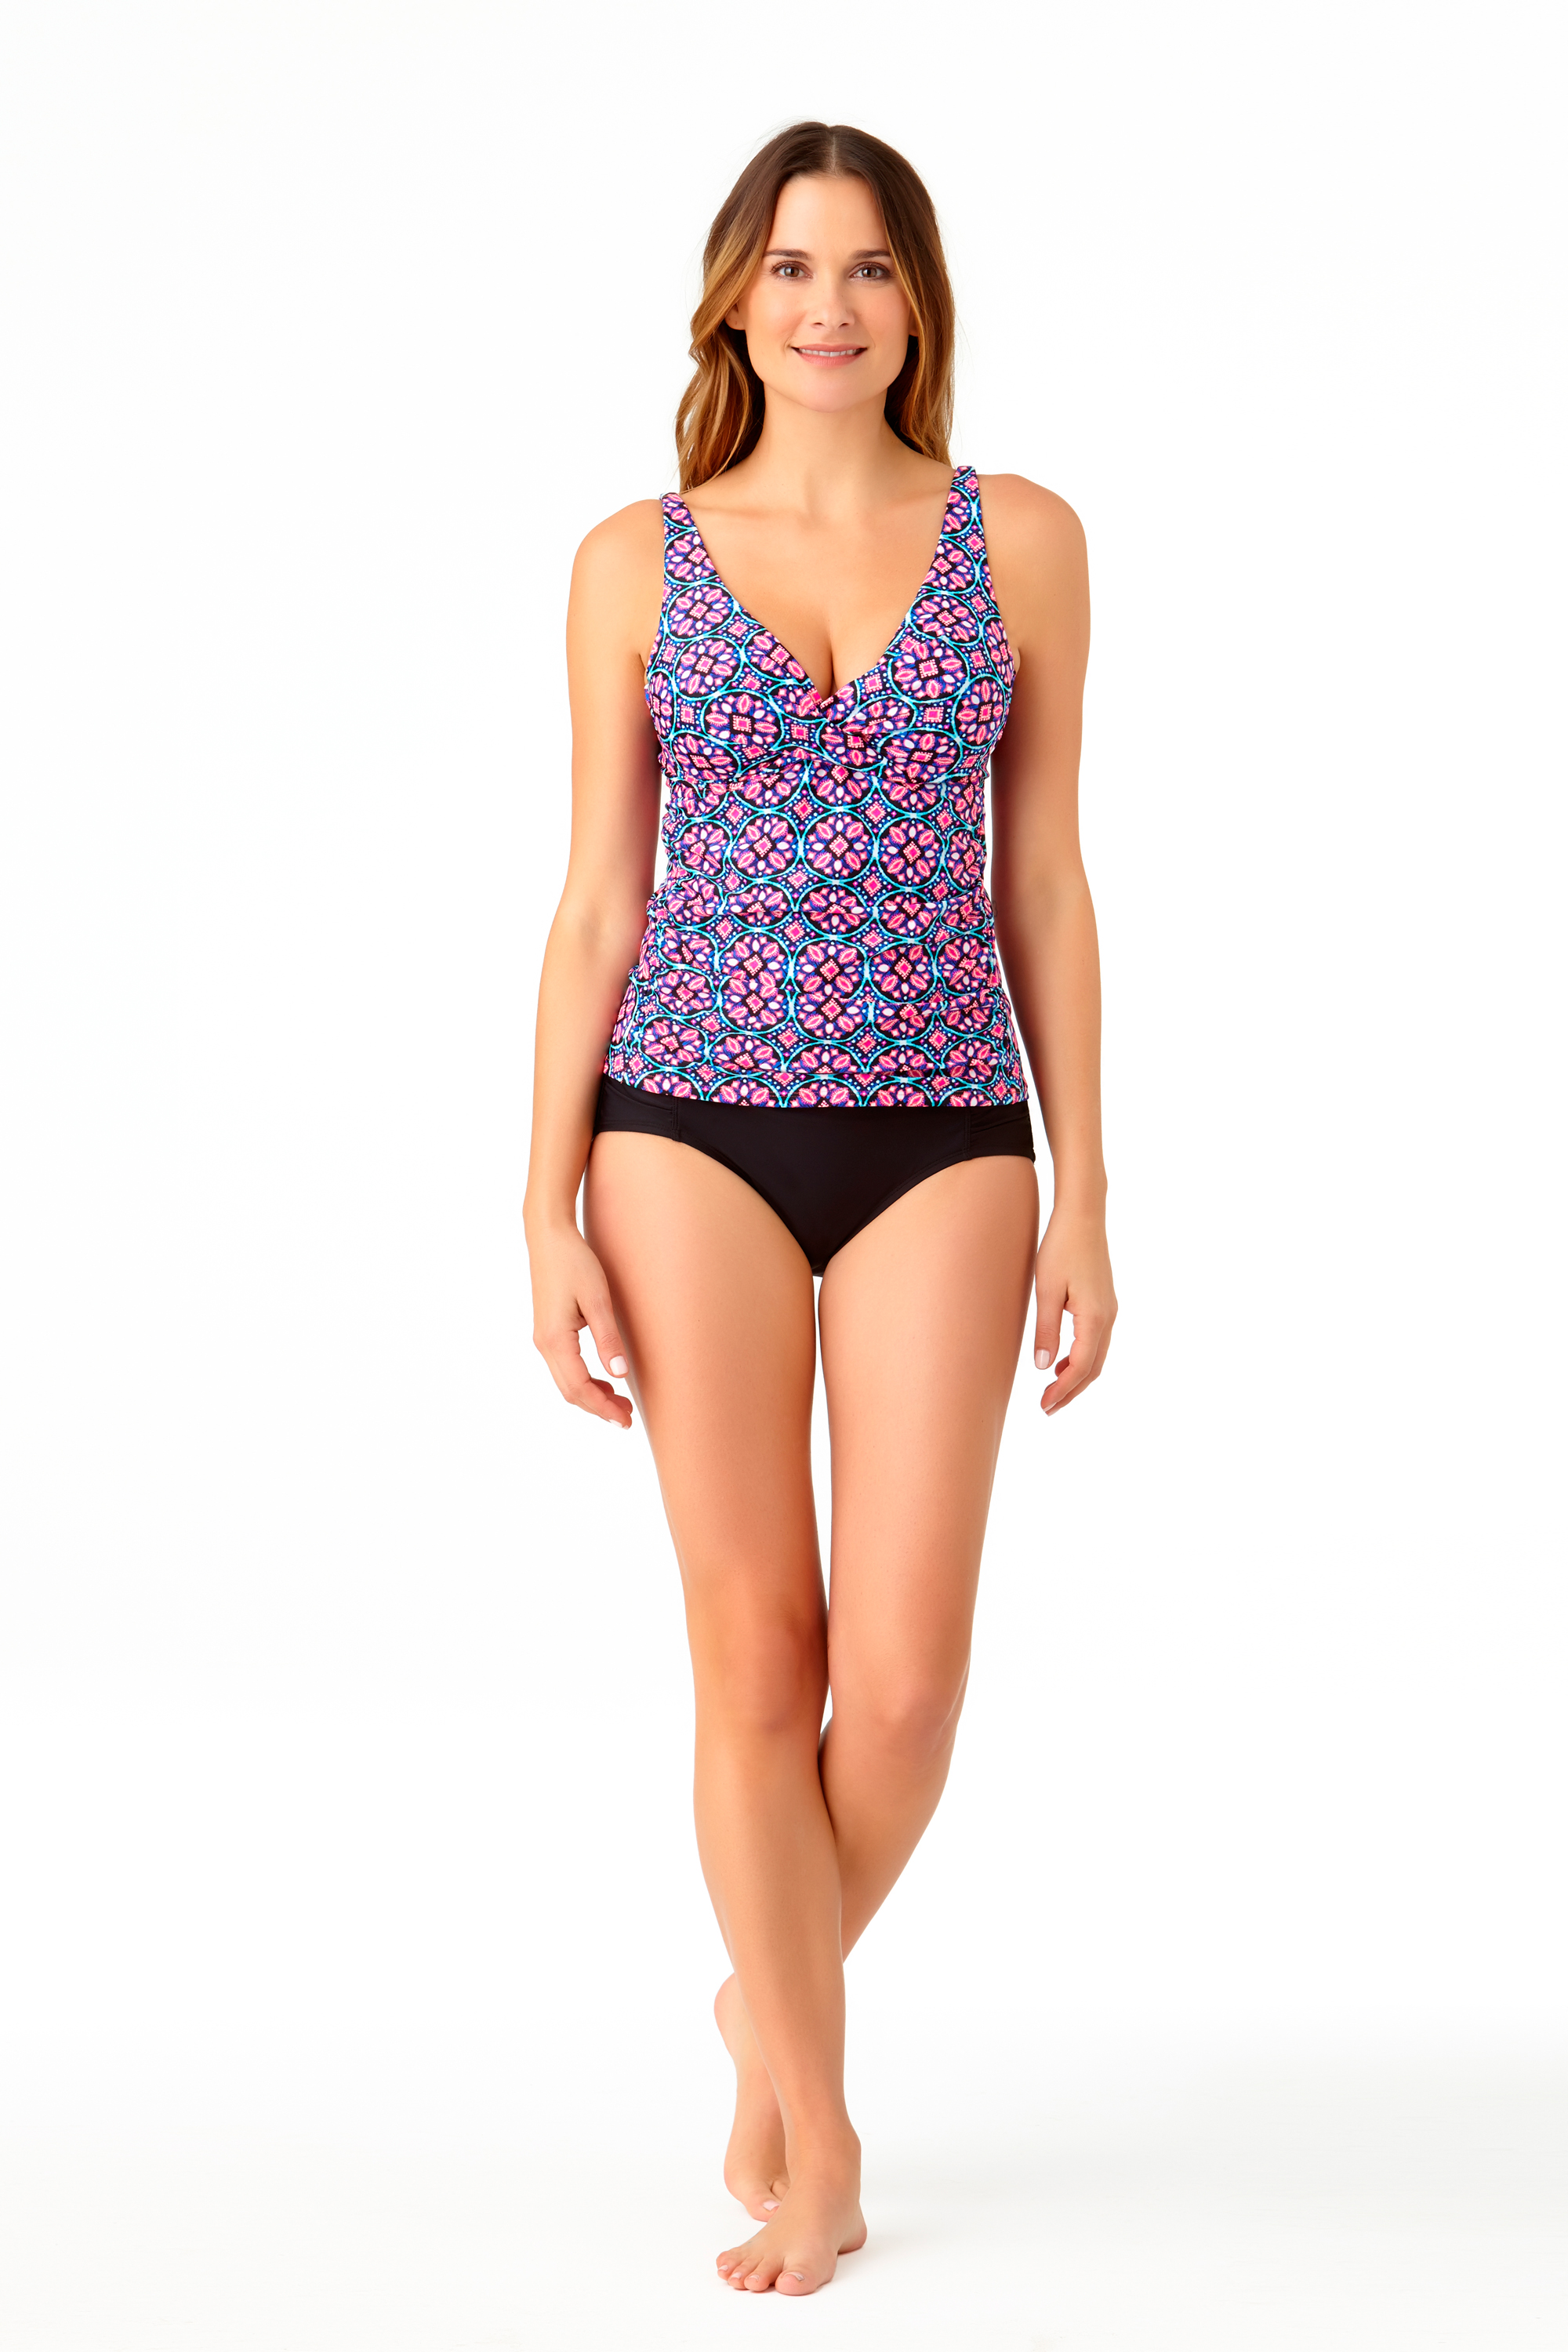 STYLE # CTL27404T / CTL27500B - Newbury Tile Tankini TopSOLD OUTSolid High Waist BottomSOLD OUT